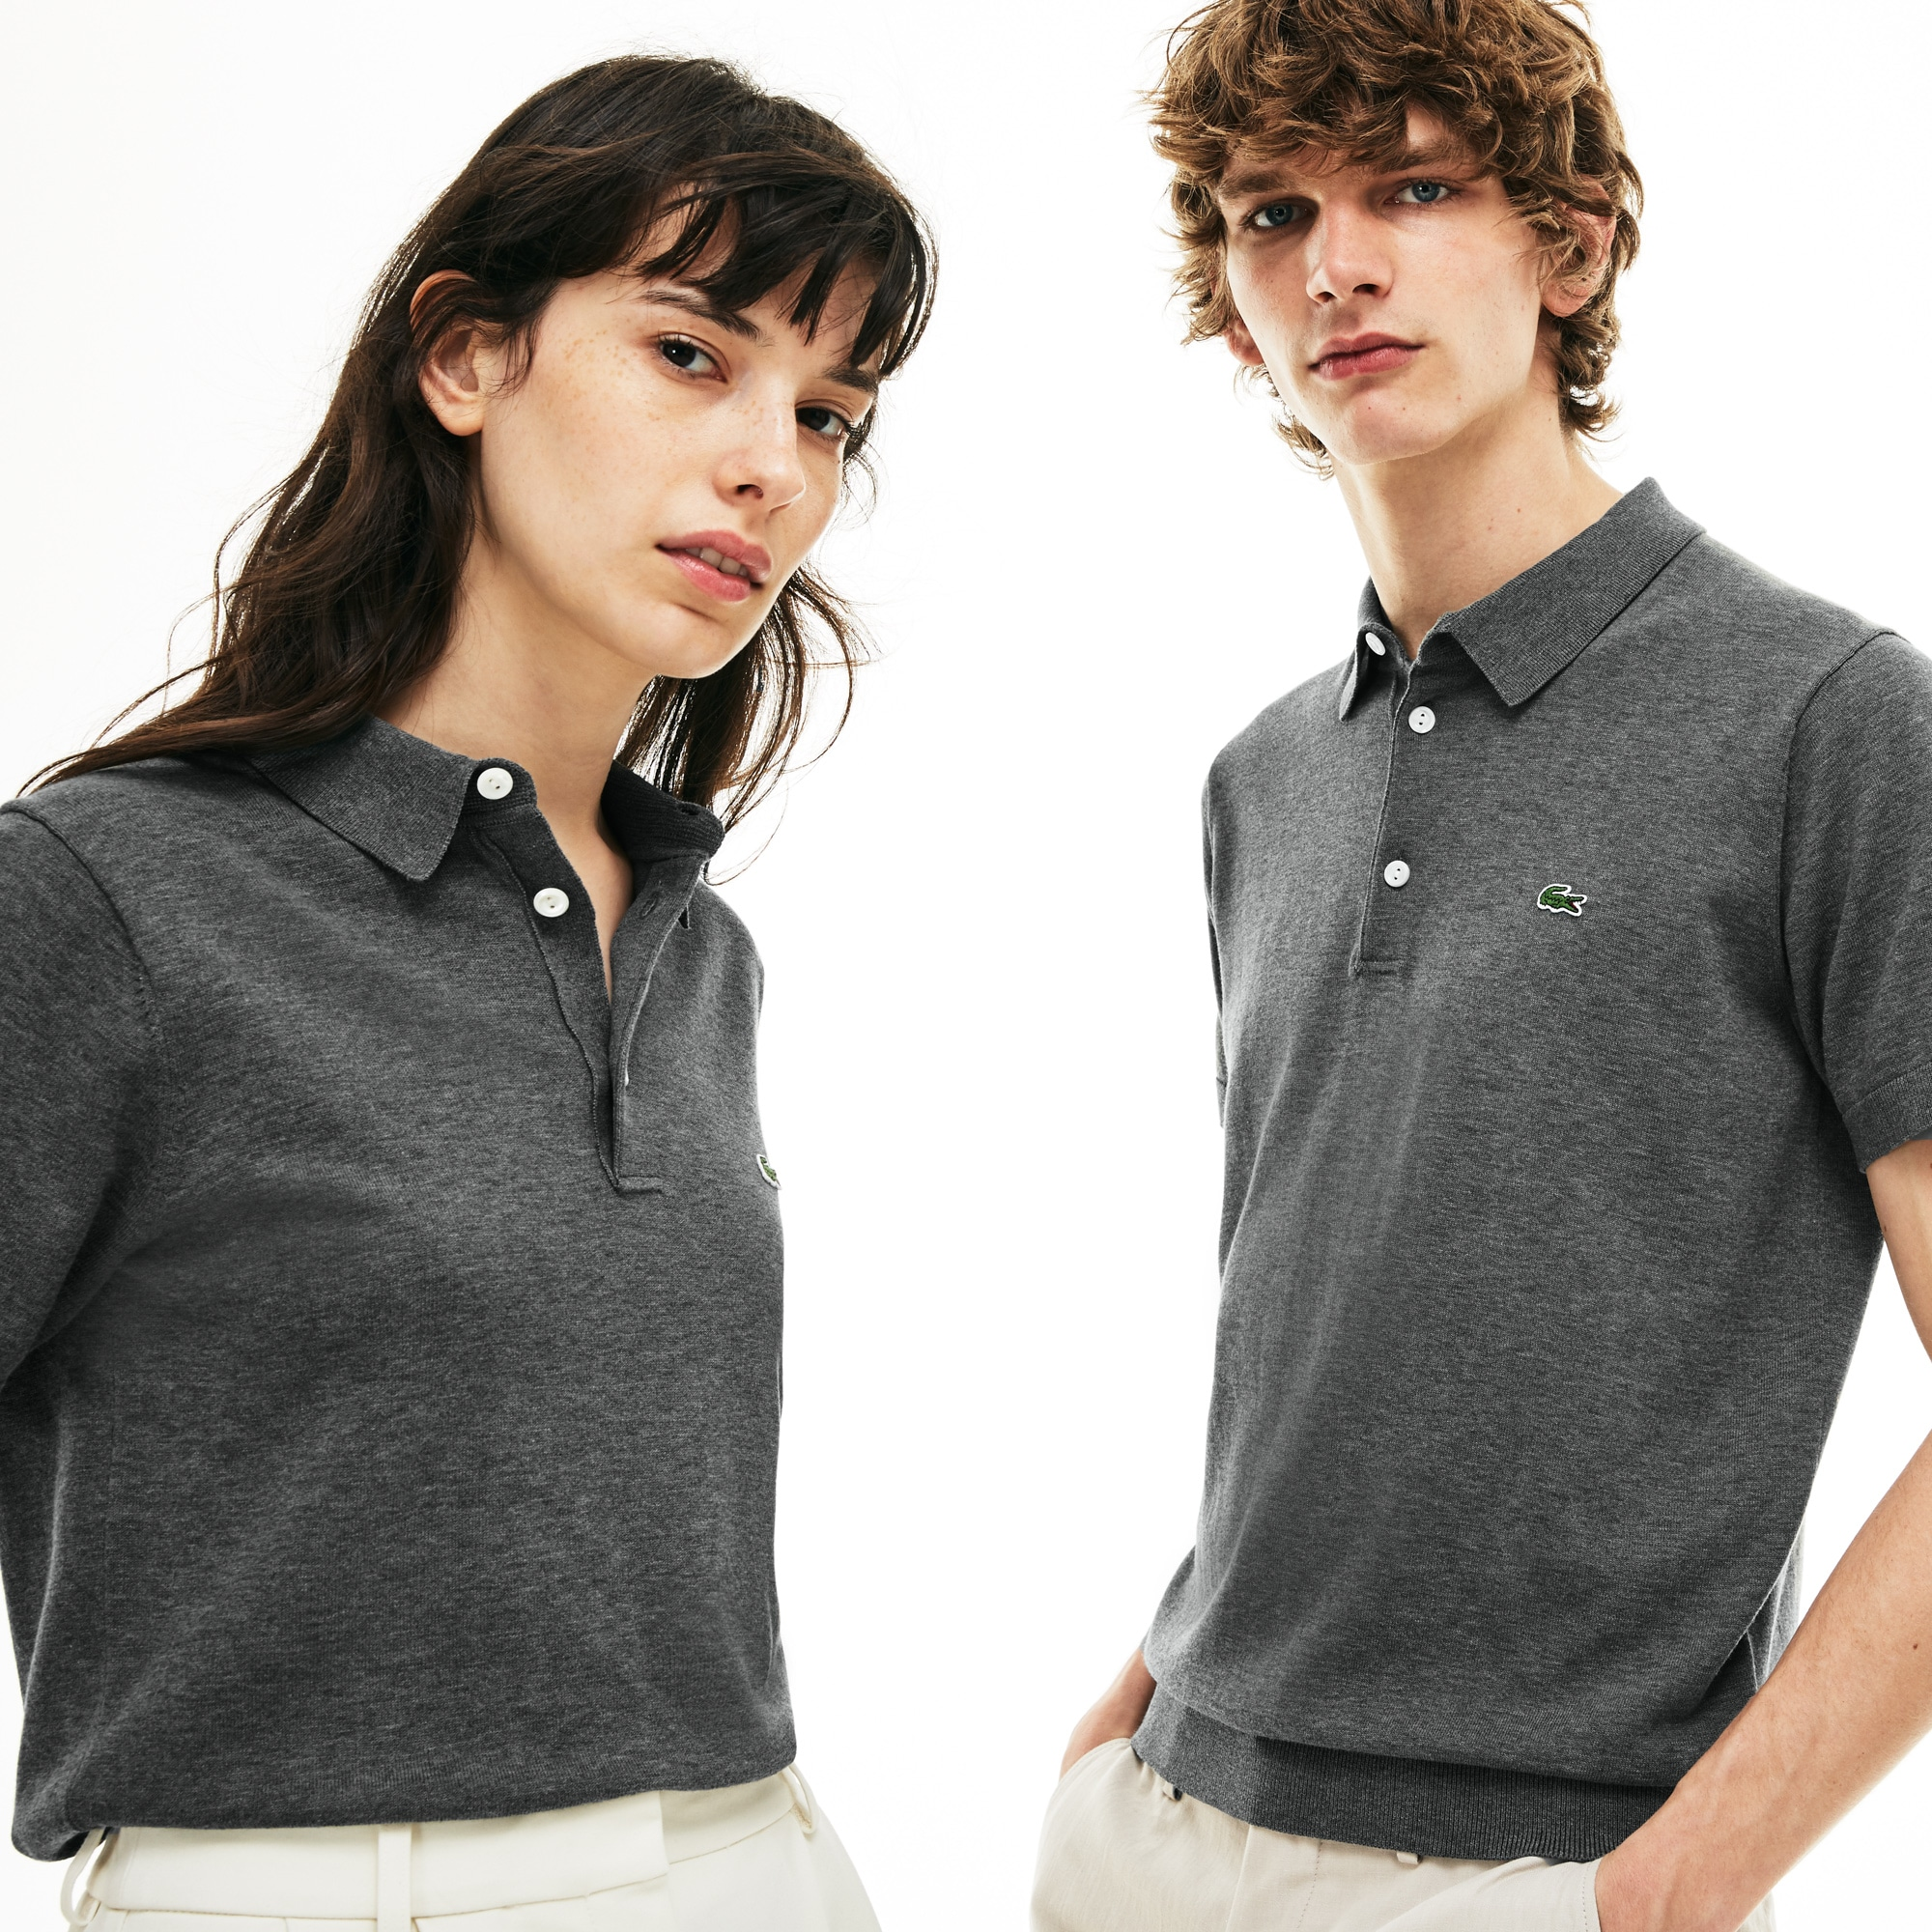 Unisex 85th Anniversary Limited Edition Flecked Polo